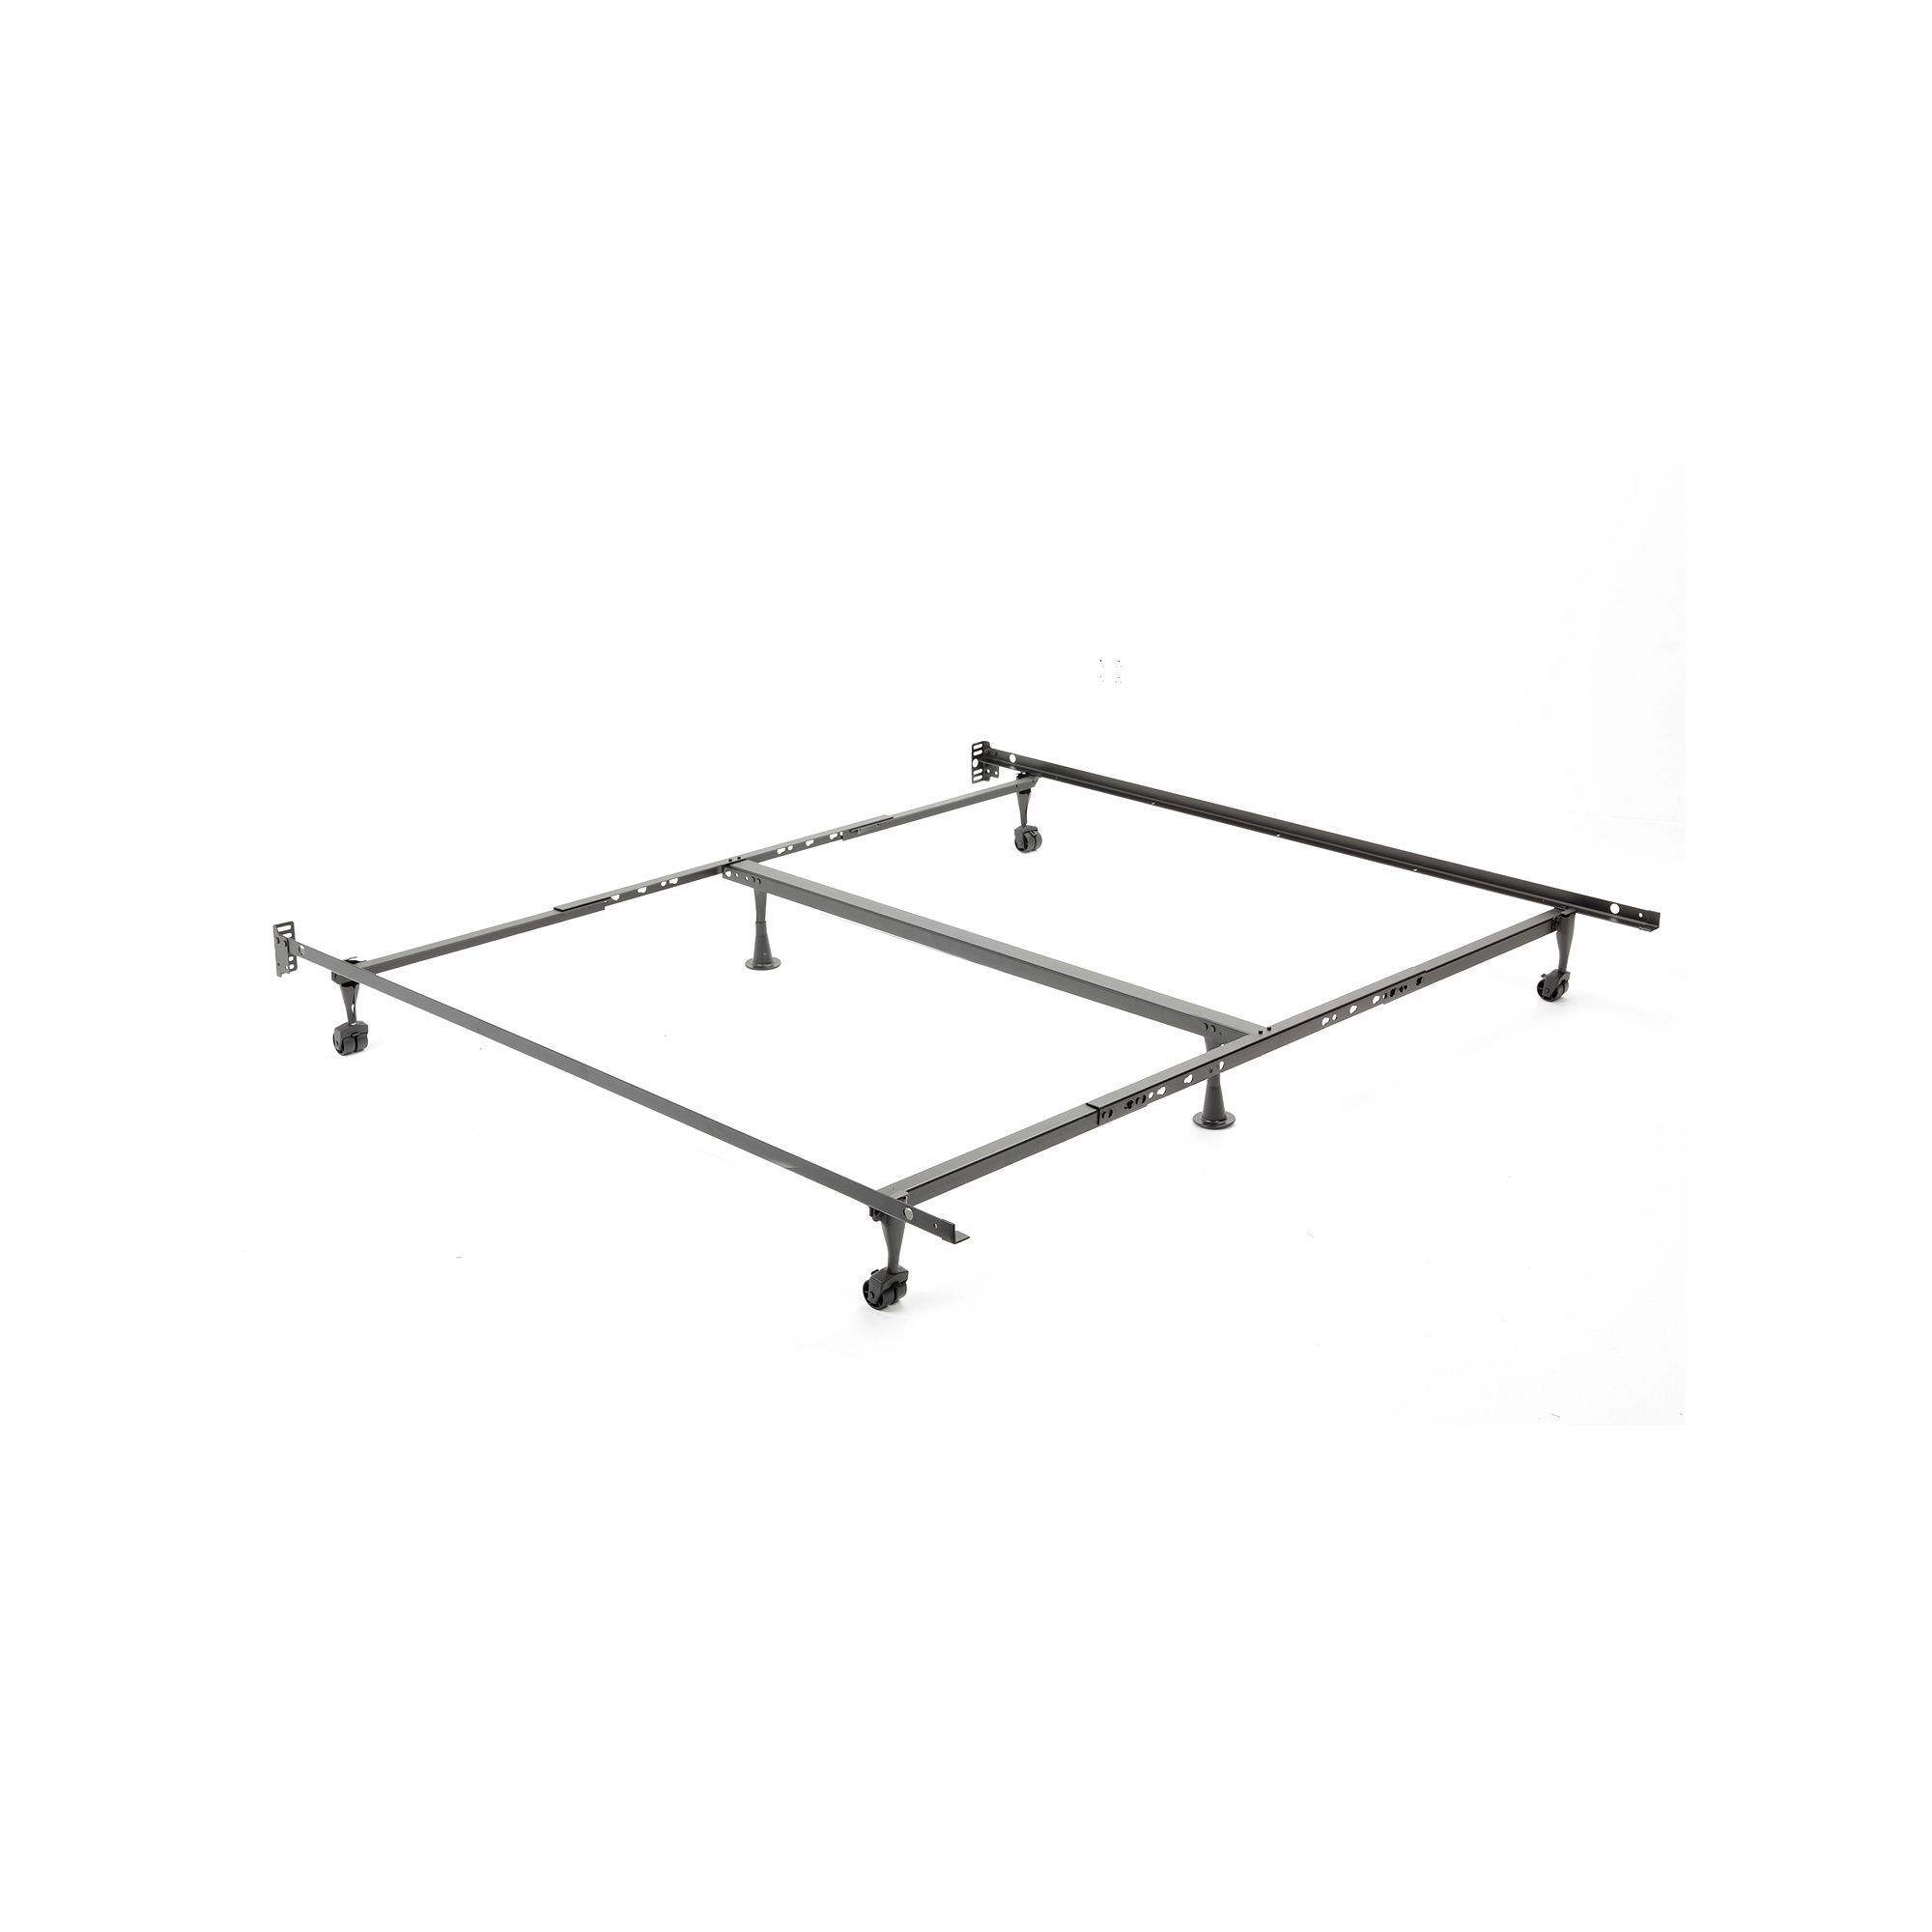 eab adjustable frames the foundationdesign leggett and by platt bed productsheet essential